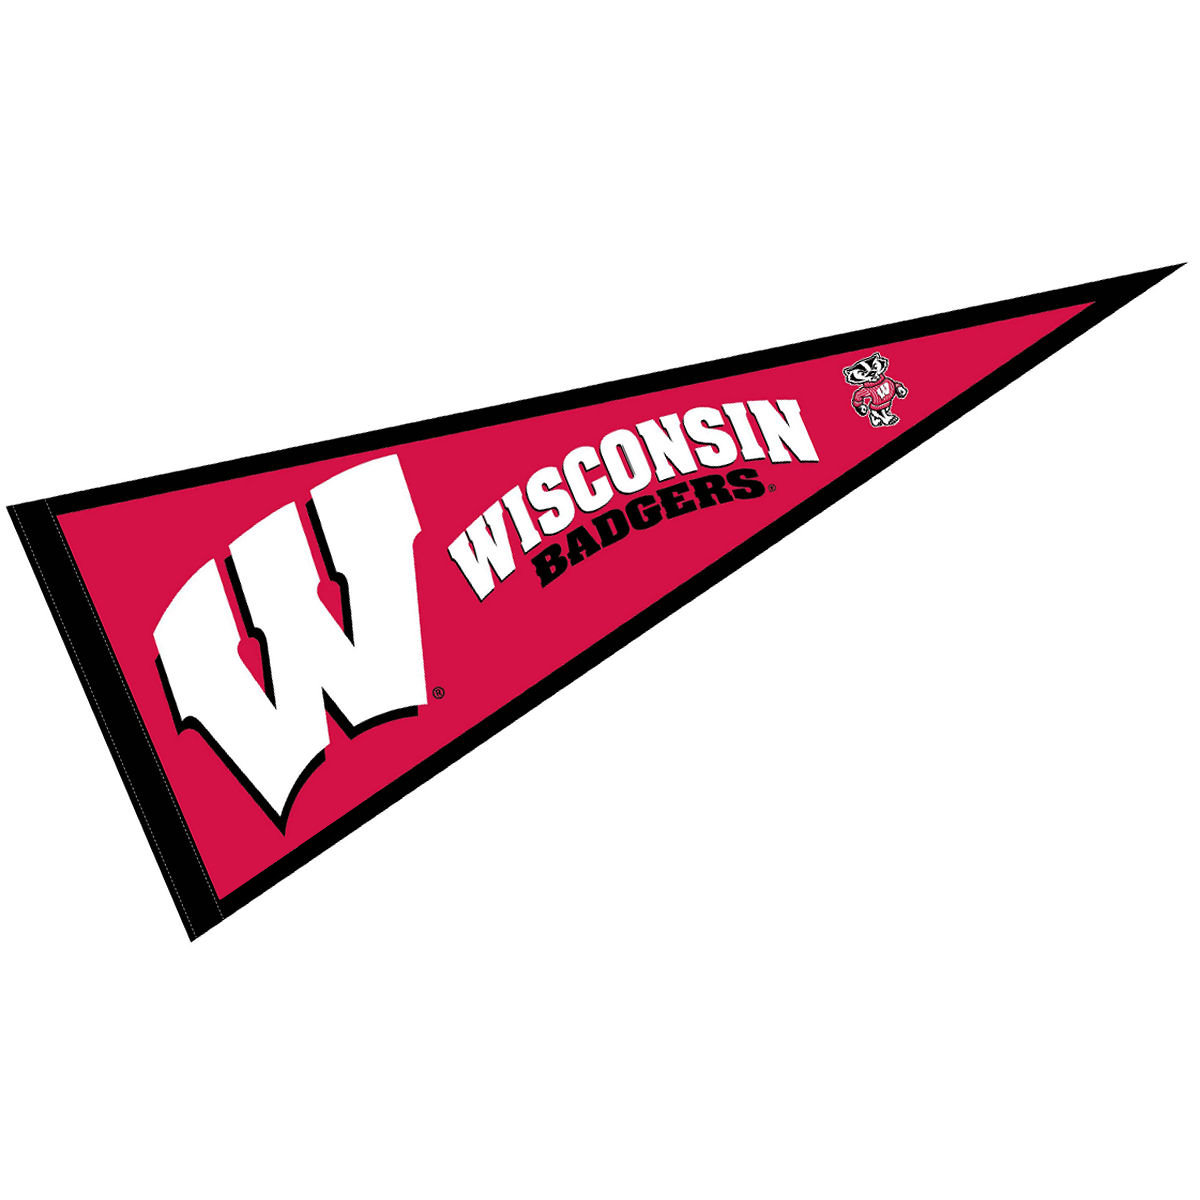 "Wisconsin Badgers 12"" X 30"" Felt College Pennant"